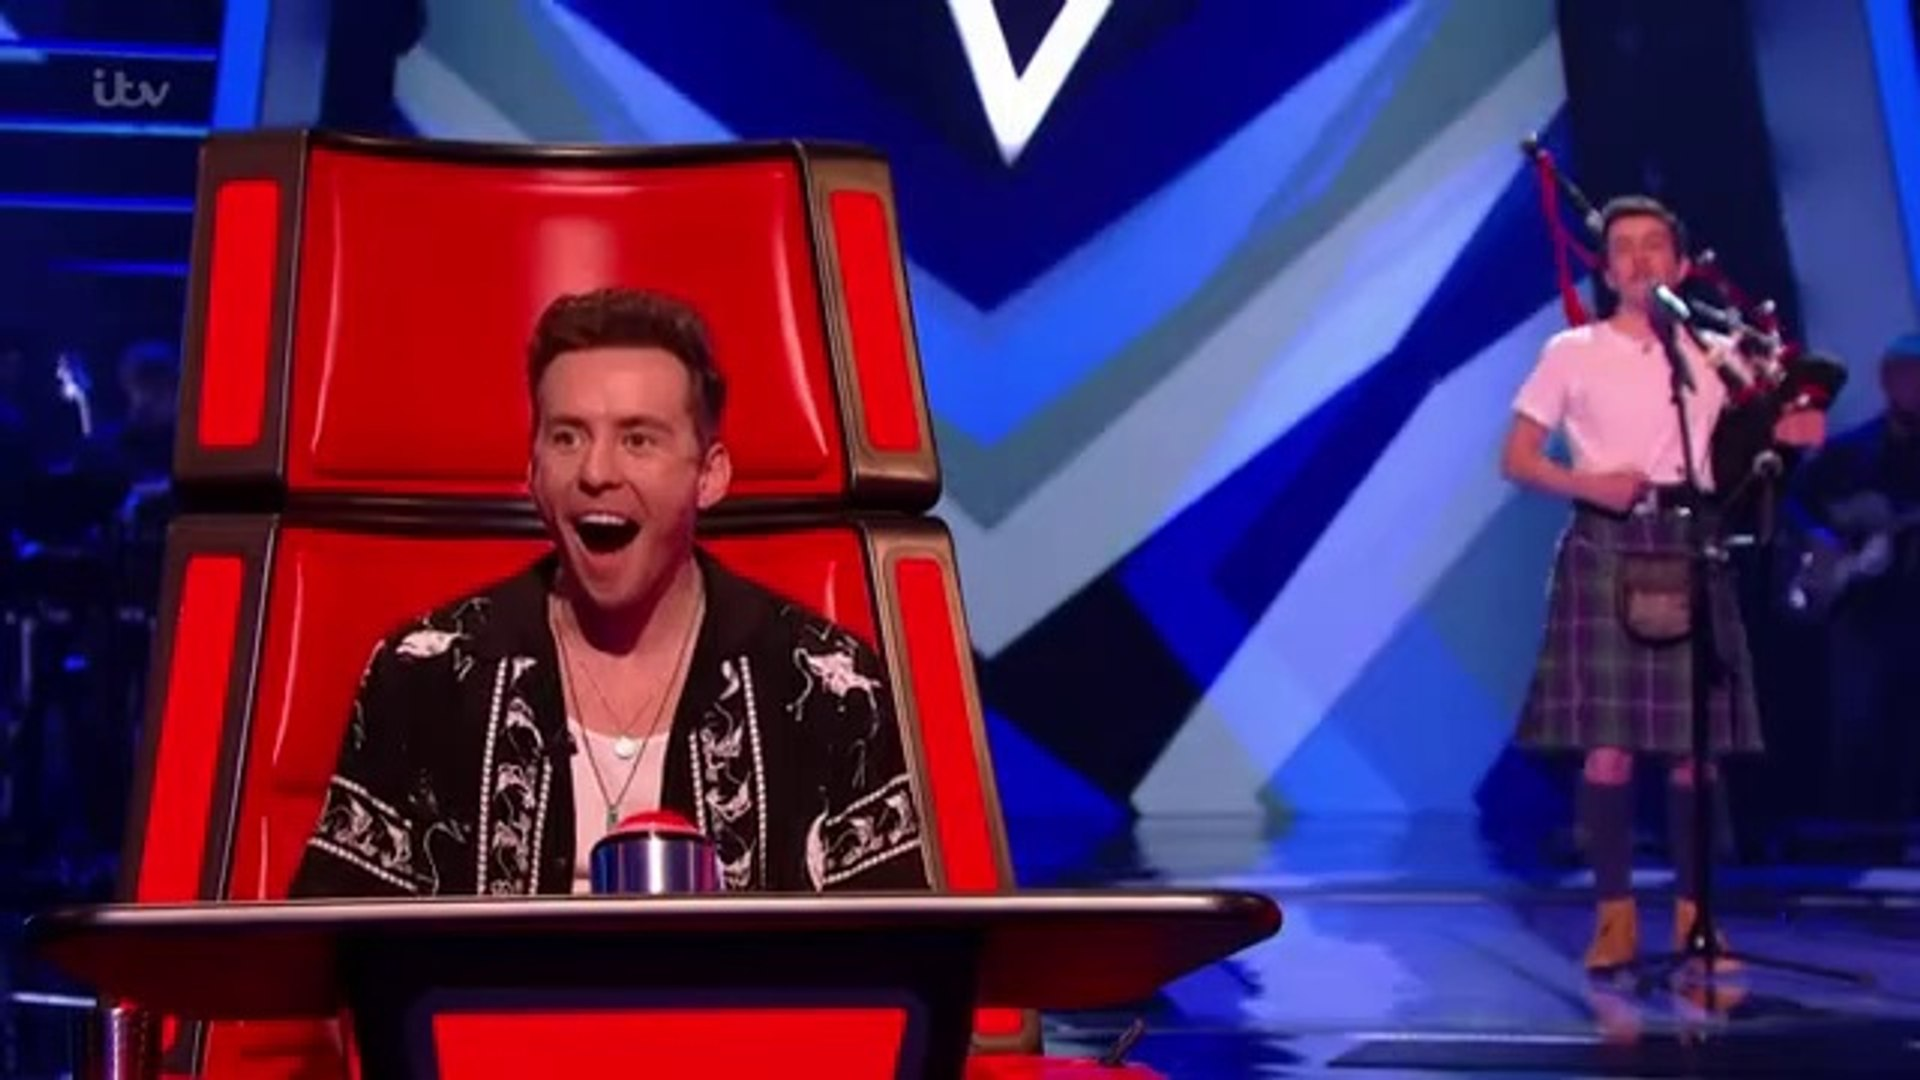 Mbc thevoice kids arabic s01e01.hd.720p (2016) مرحلة الصوت وبس see fire غدي بشارة. The Voice Kids Uk S04e01 Blind Auditions 1 July 11 2020 The Voice Kids Uk S04e02 Video Dailymotion